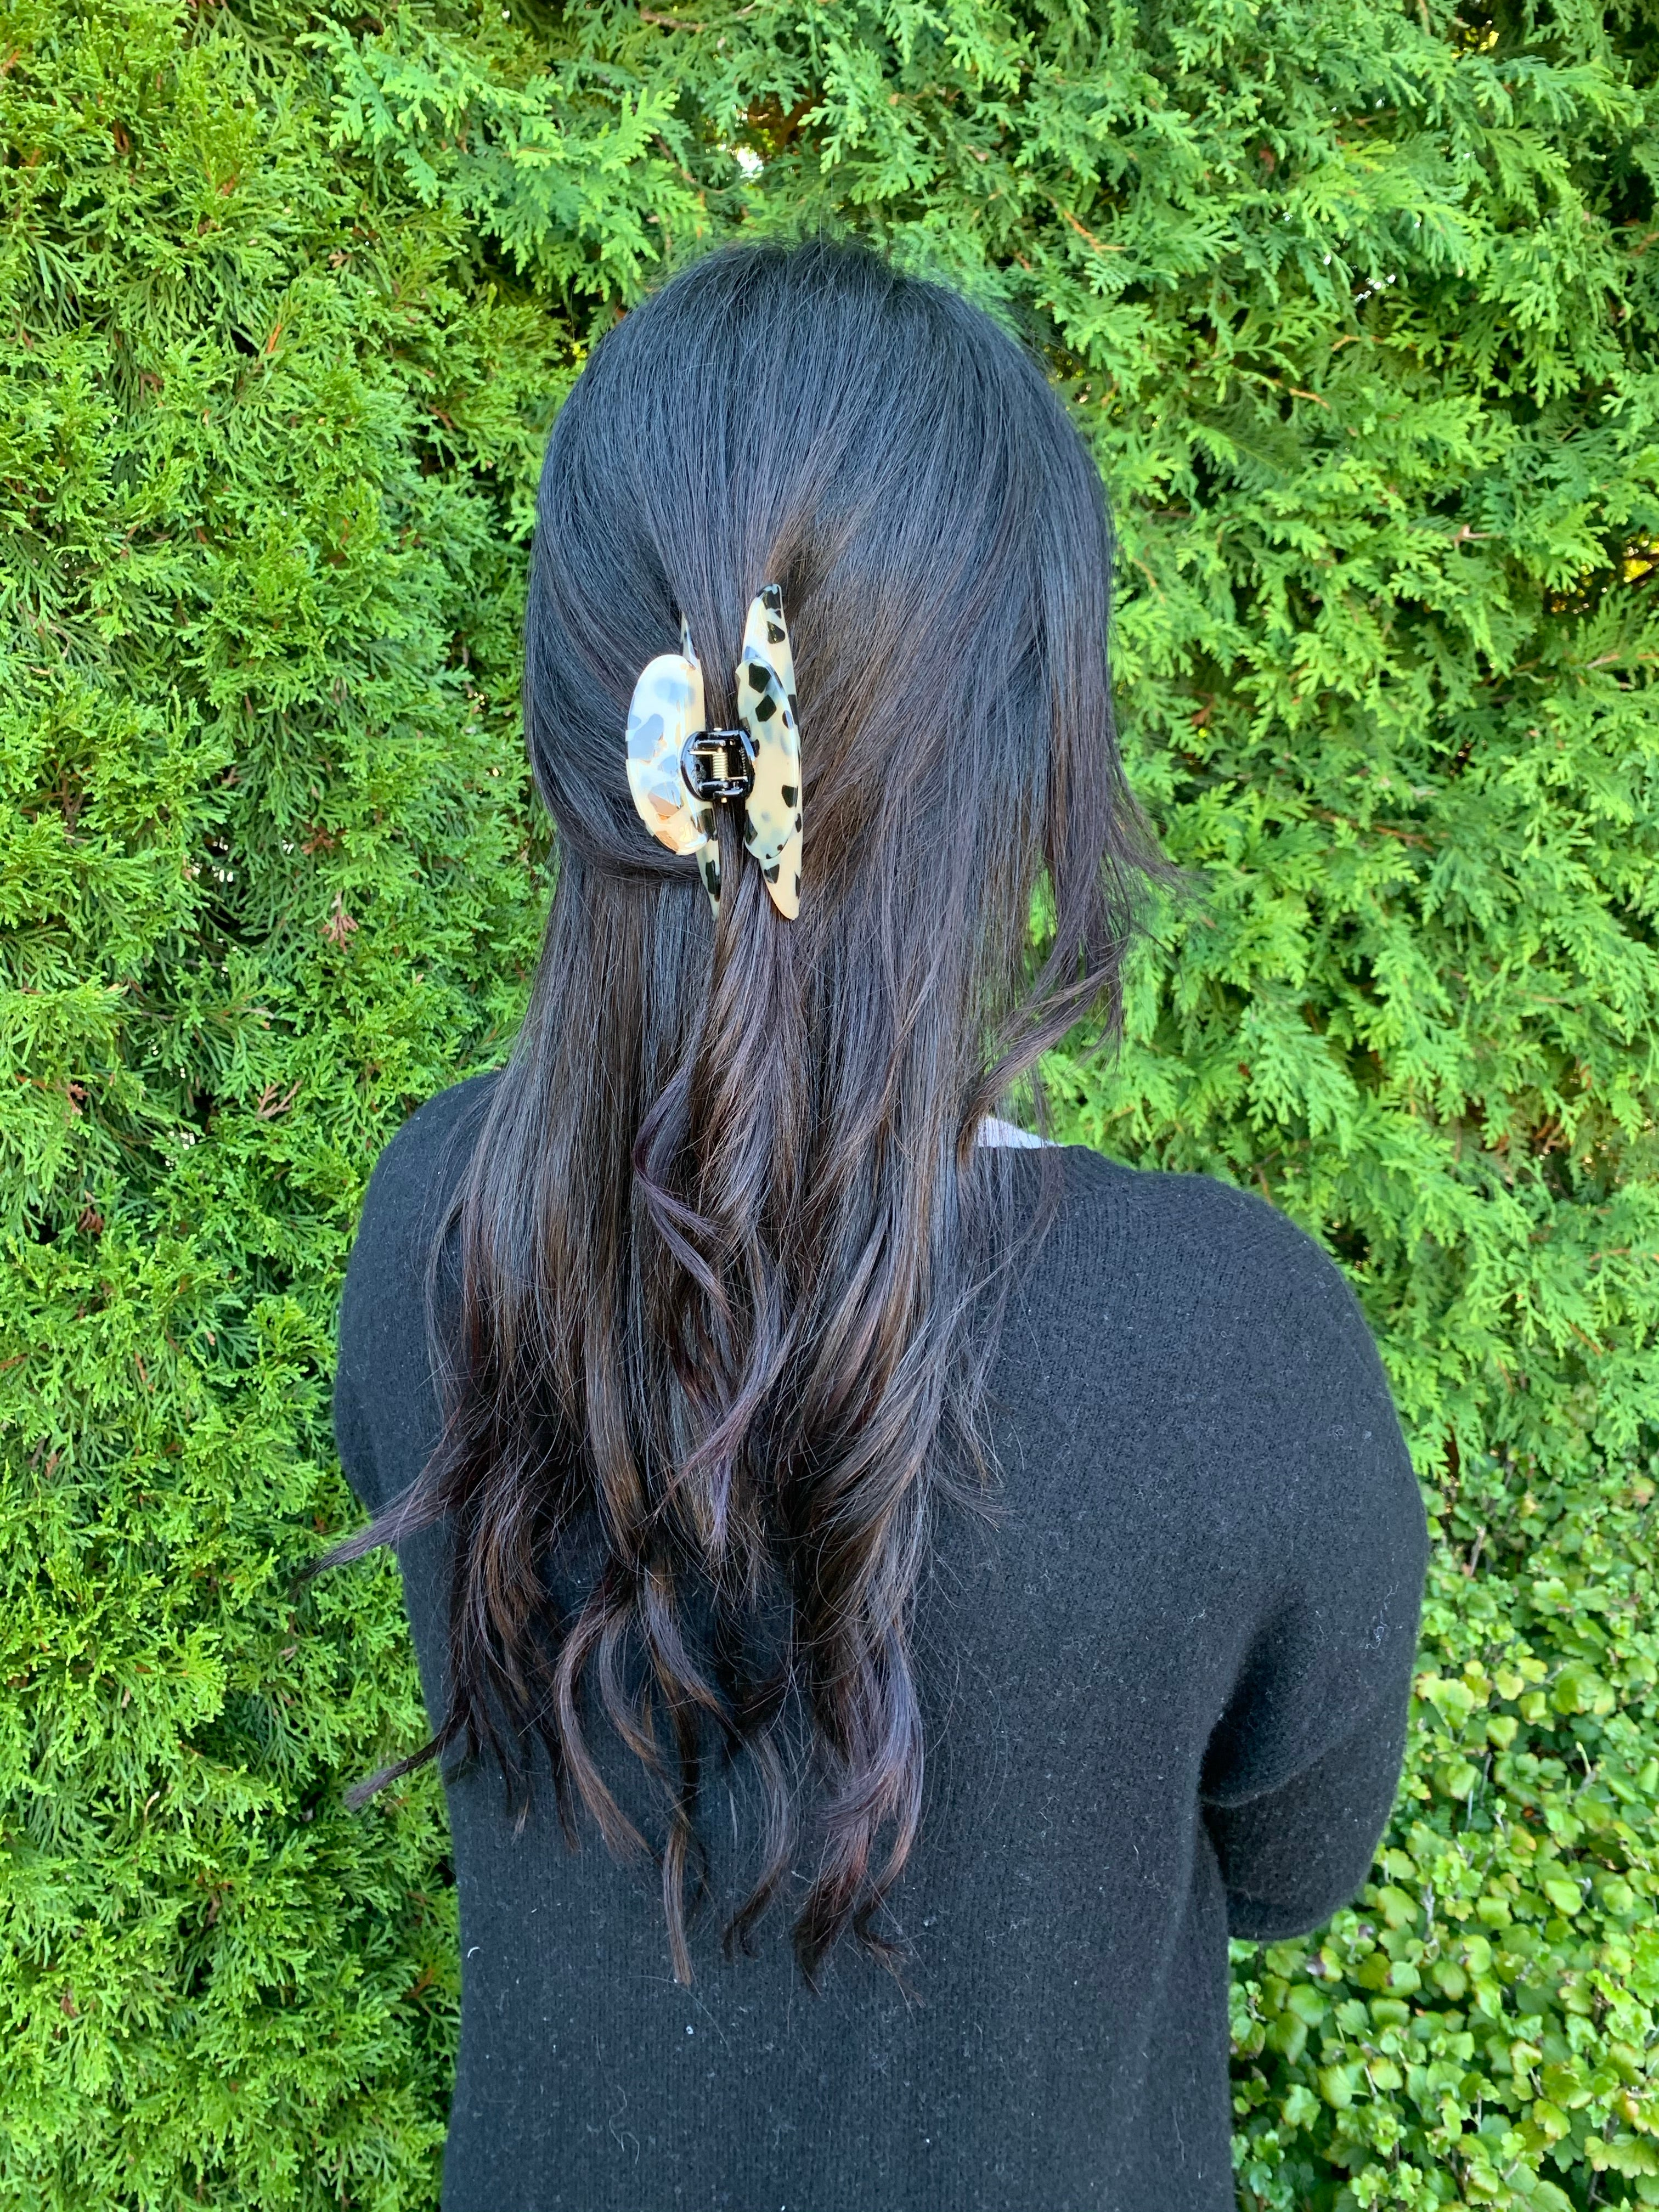 Celine leopard claw clip